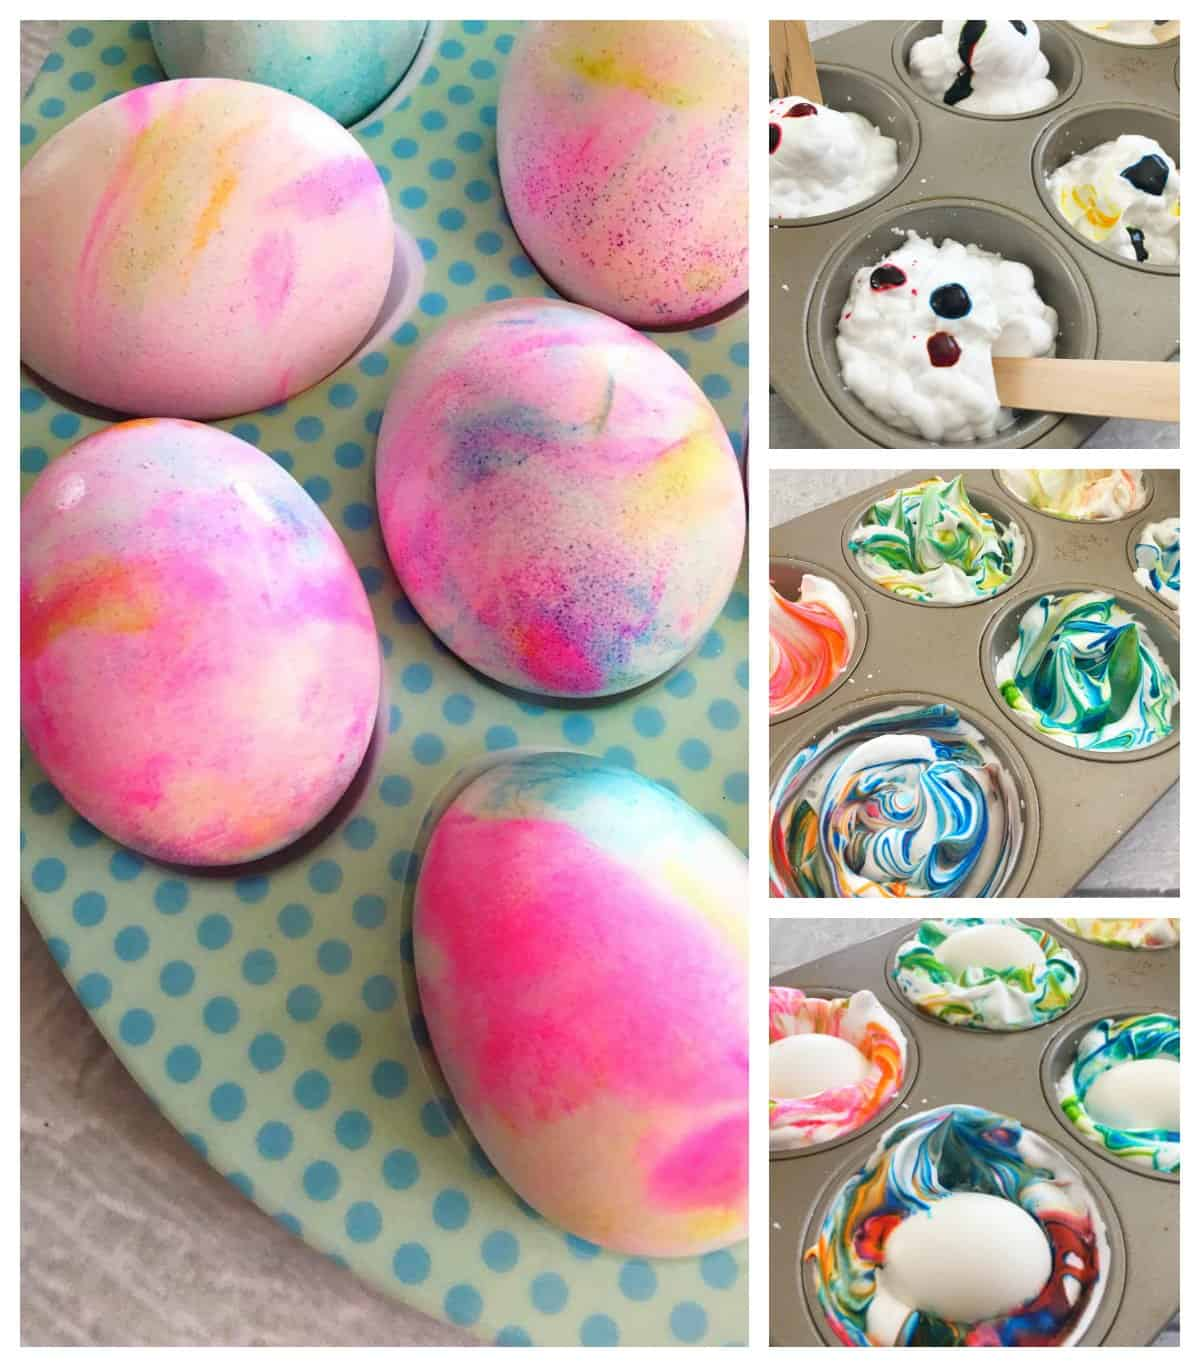 How to Dye Easter Eggs Using Shaving Cream